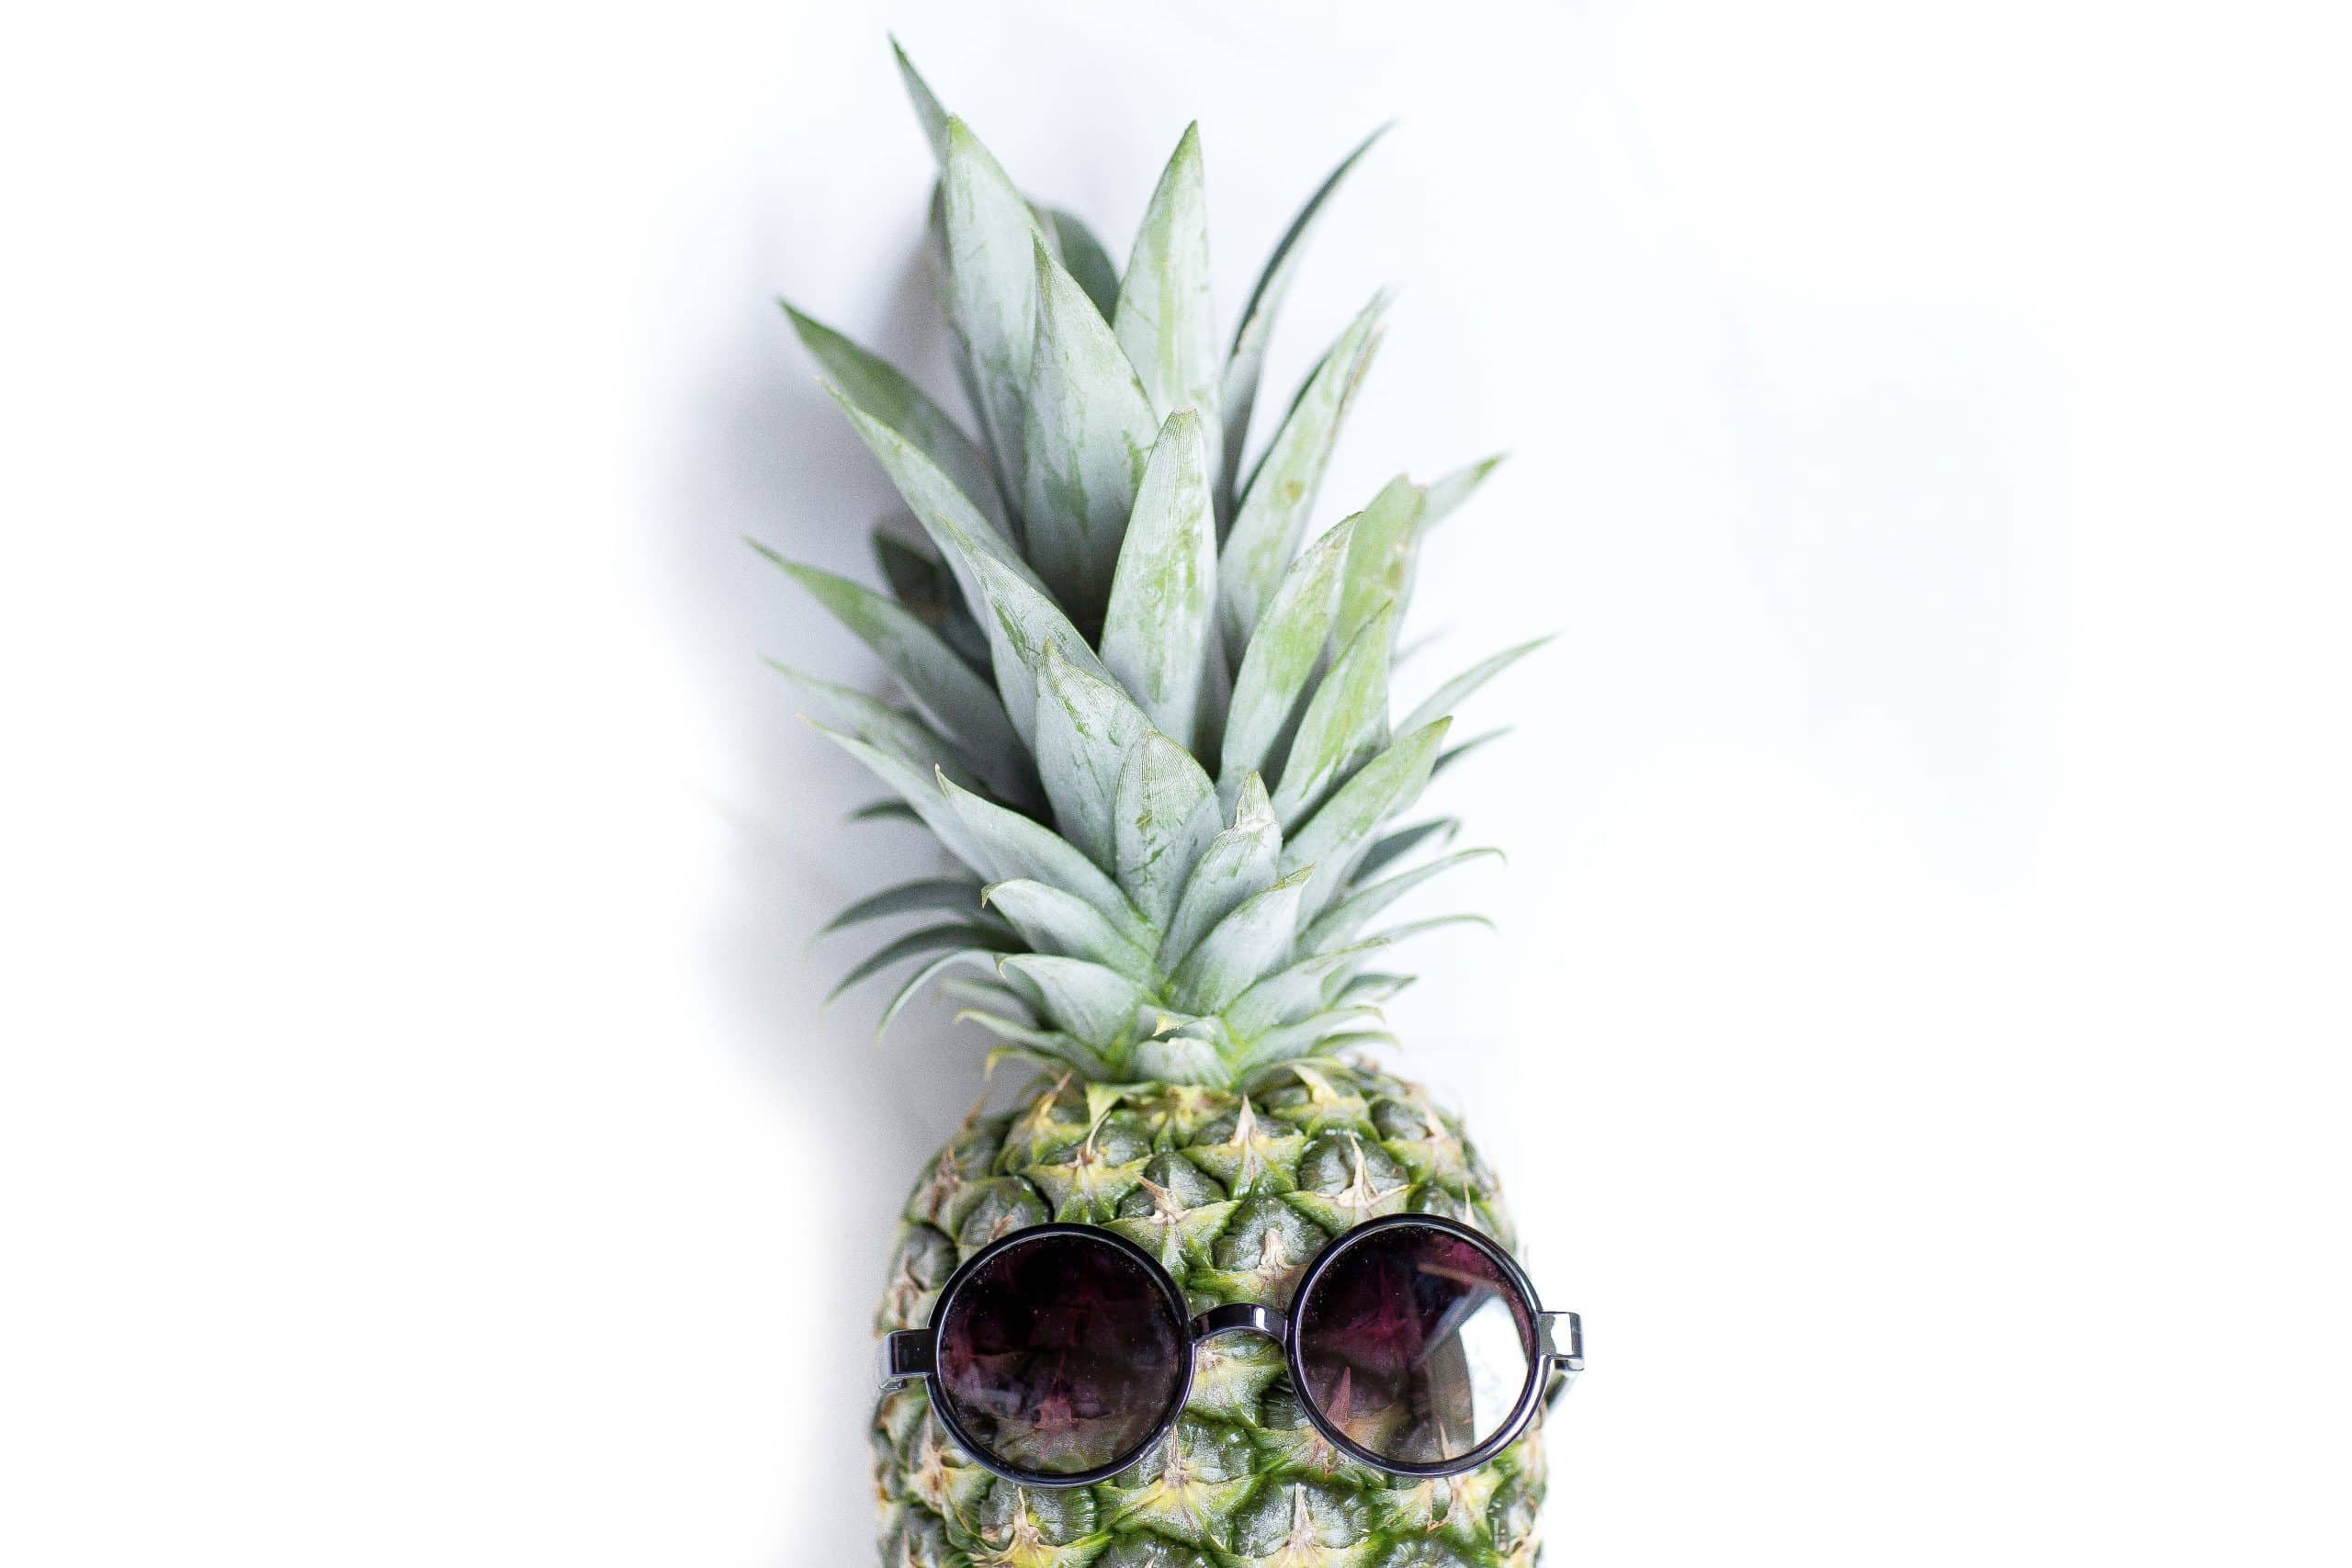 Pineapple with sunglasses on ready to be put into a fermented recipe